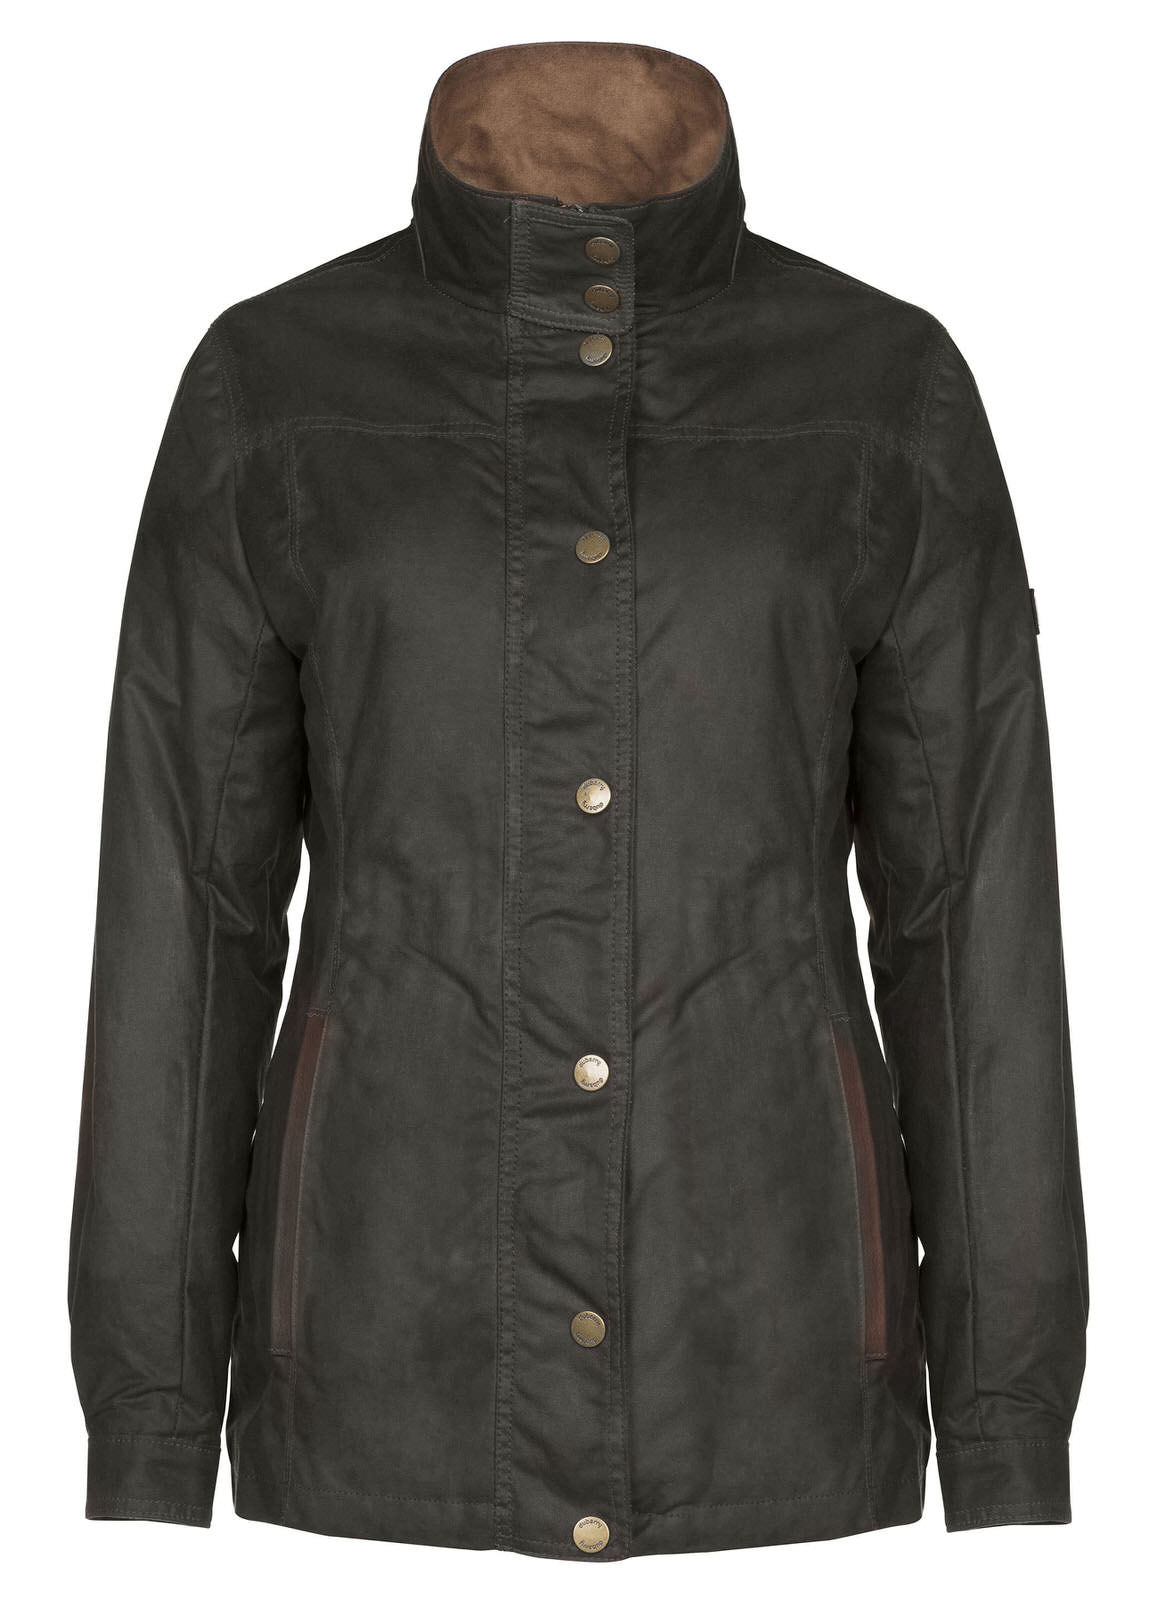 Mountrath_Waxed_Jacket_Olive_Image_1